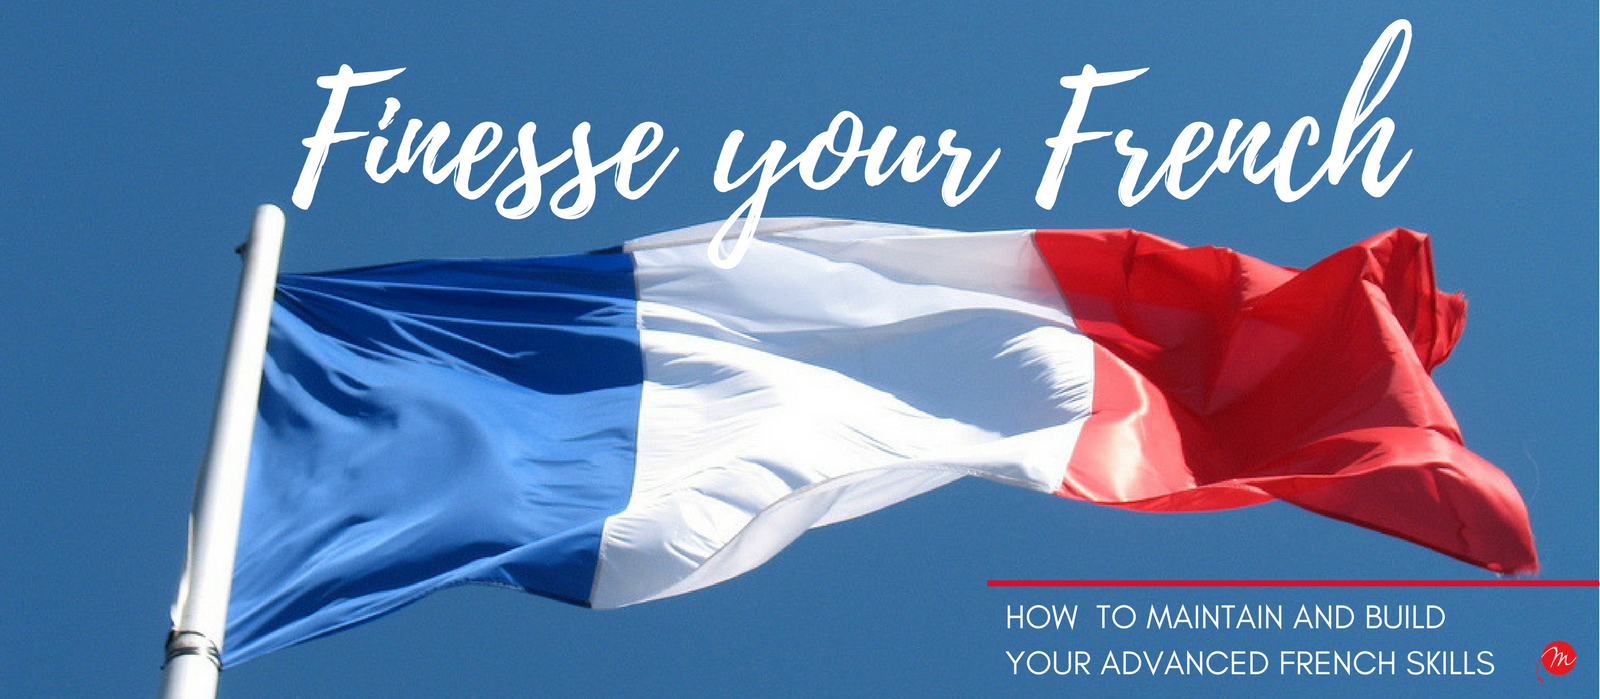 MyFrenchLife™ - MyFrenchLife.org - Finesse your French - Advanced French skills - header